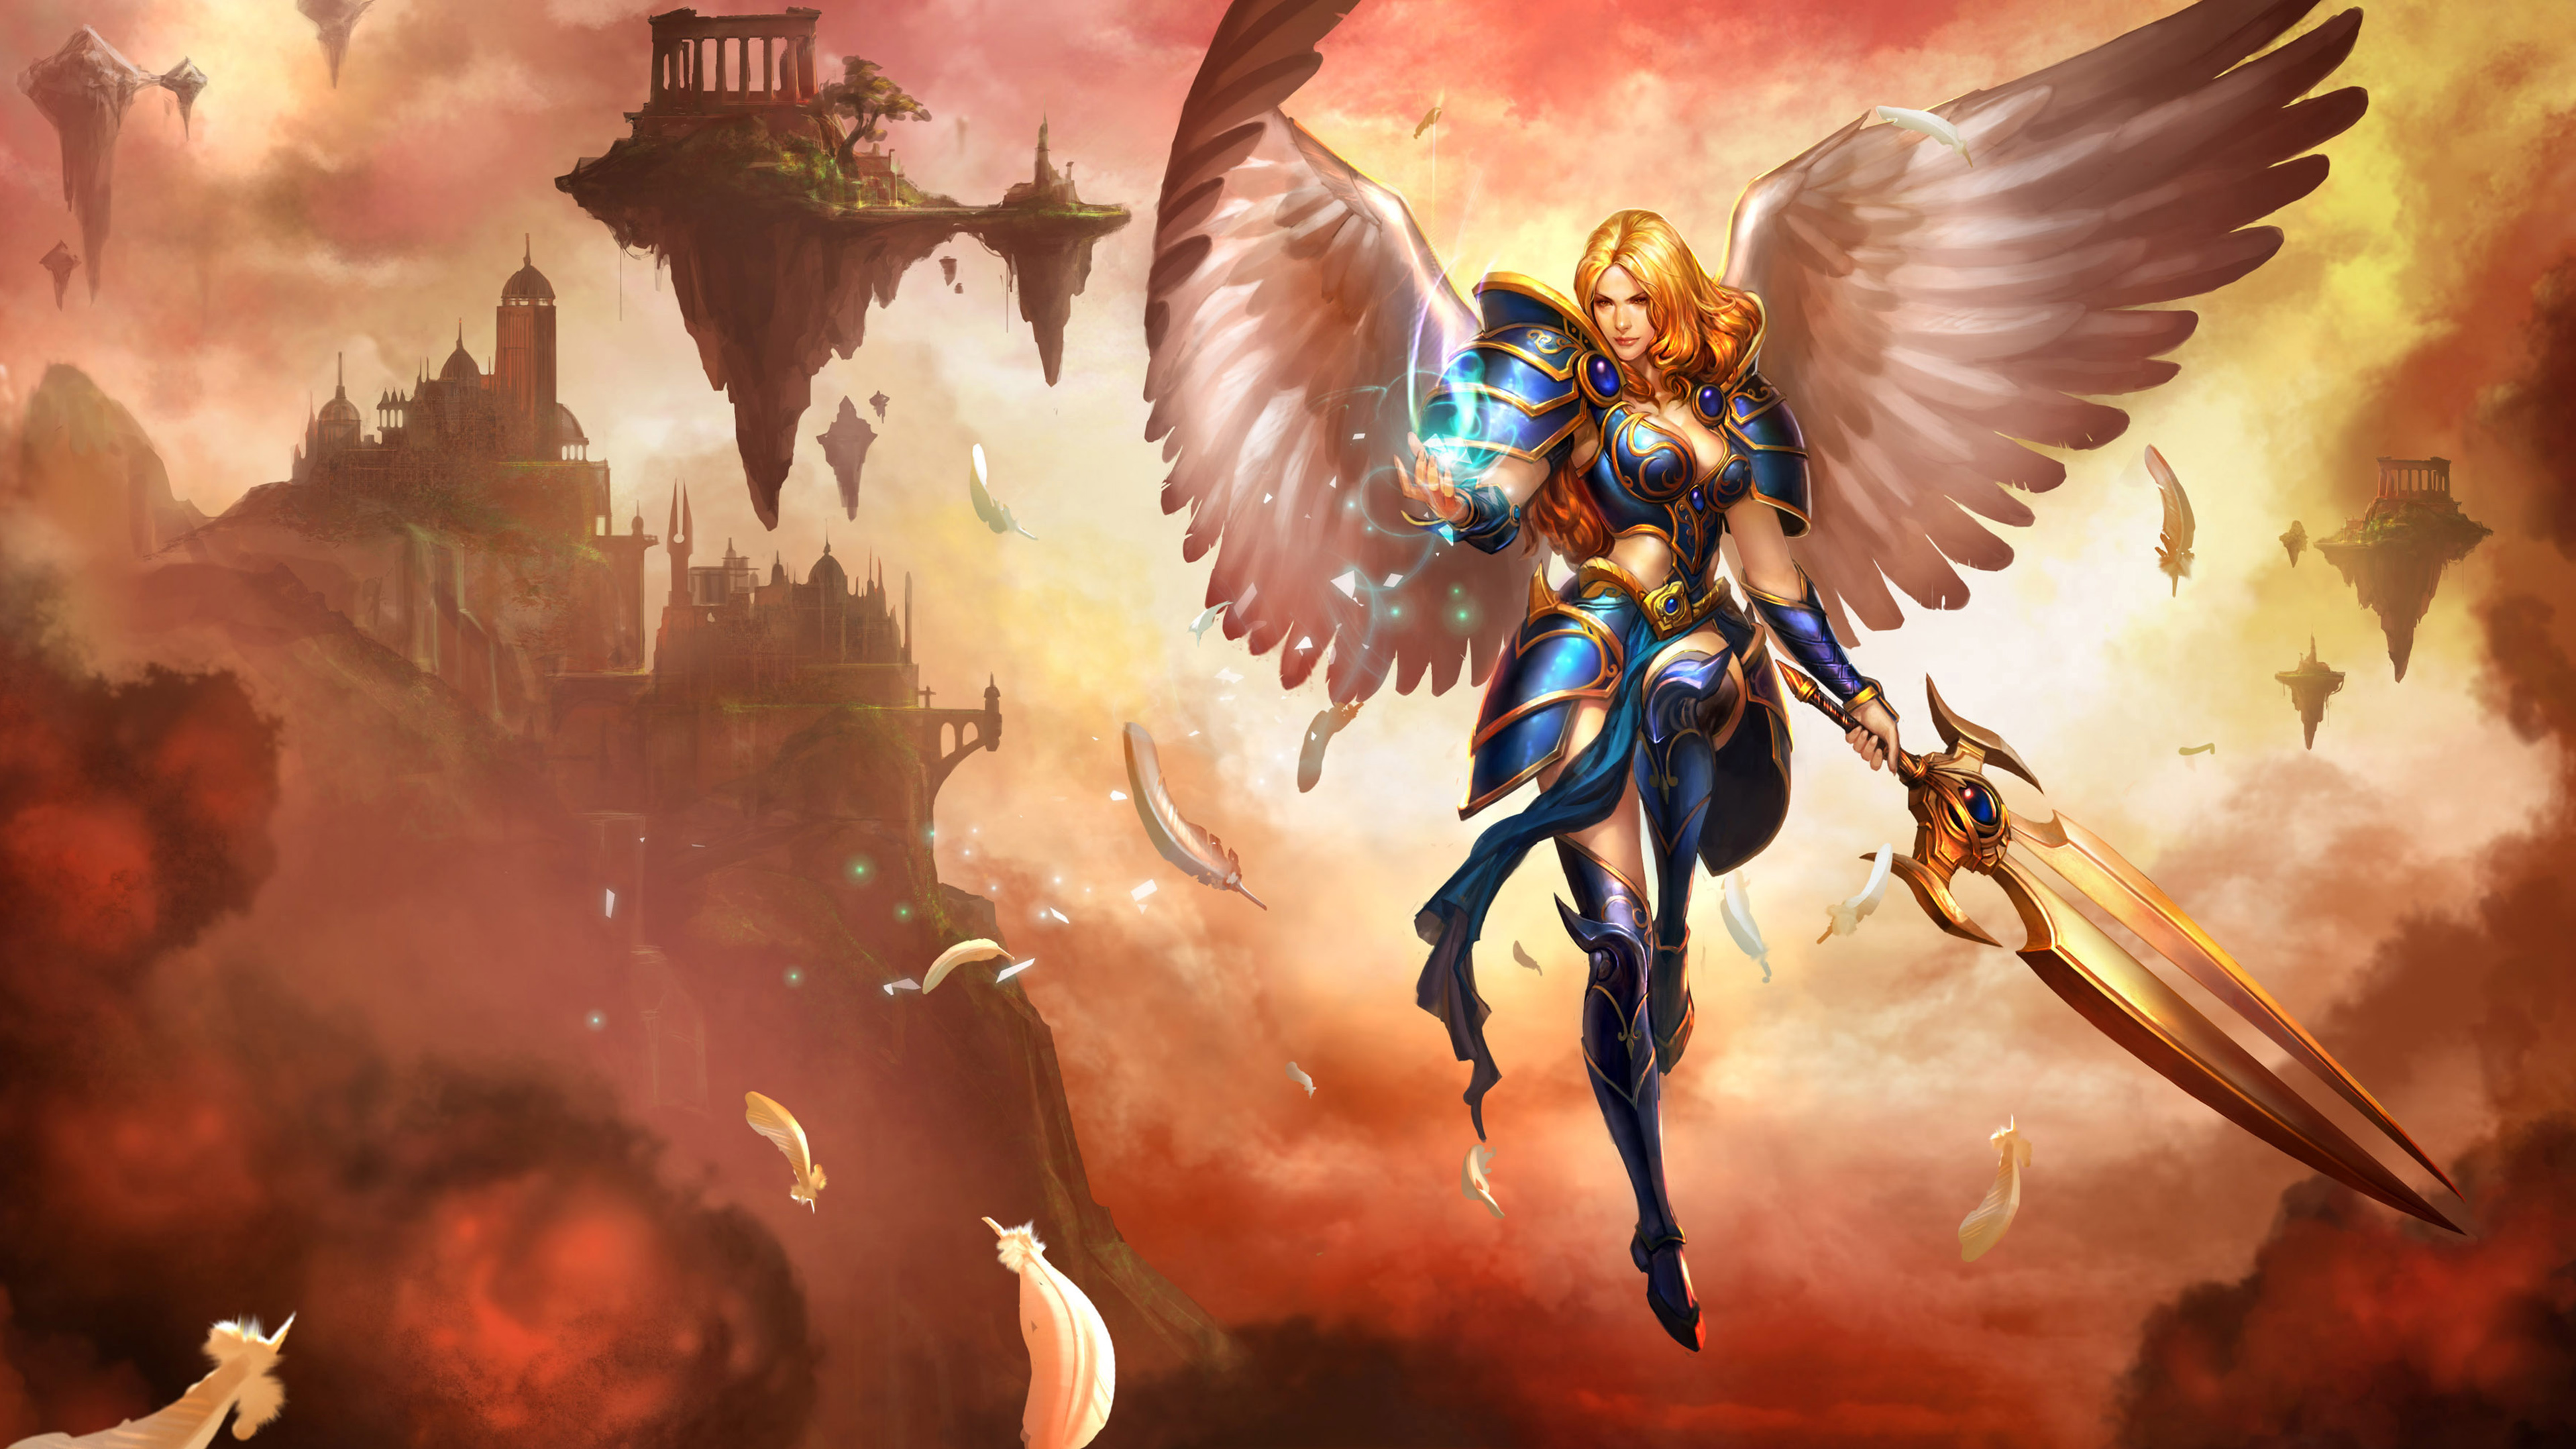 Kayle League Of Legends Wallpapers Hd Wallpapers